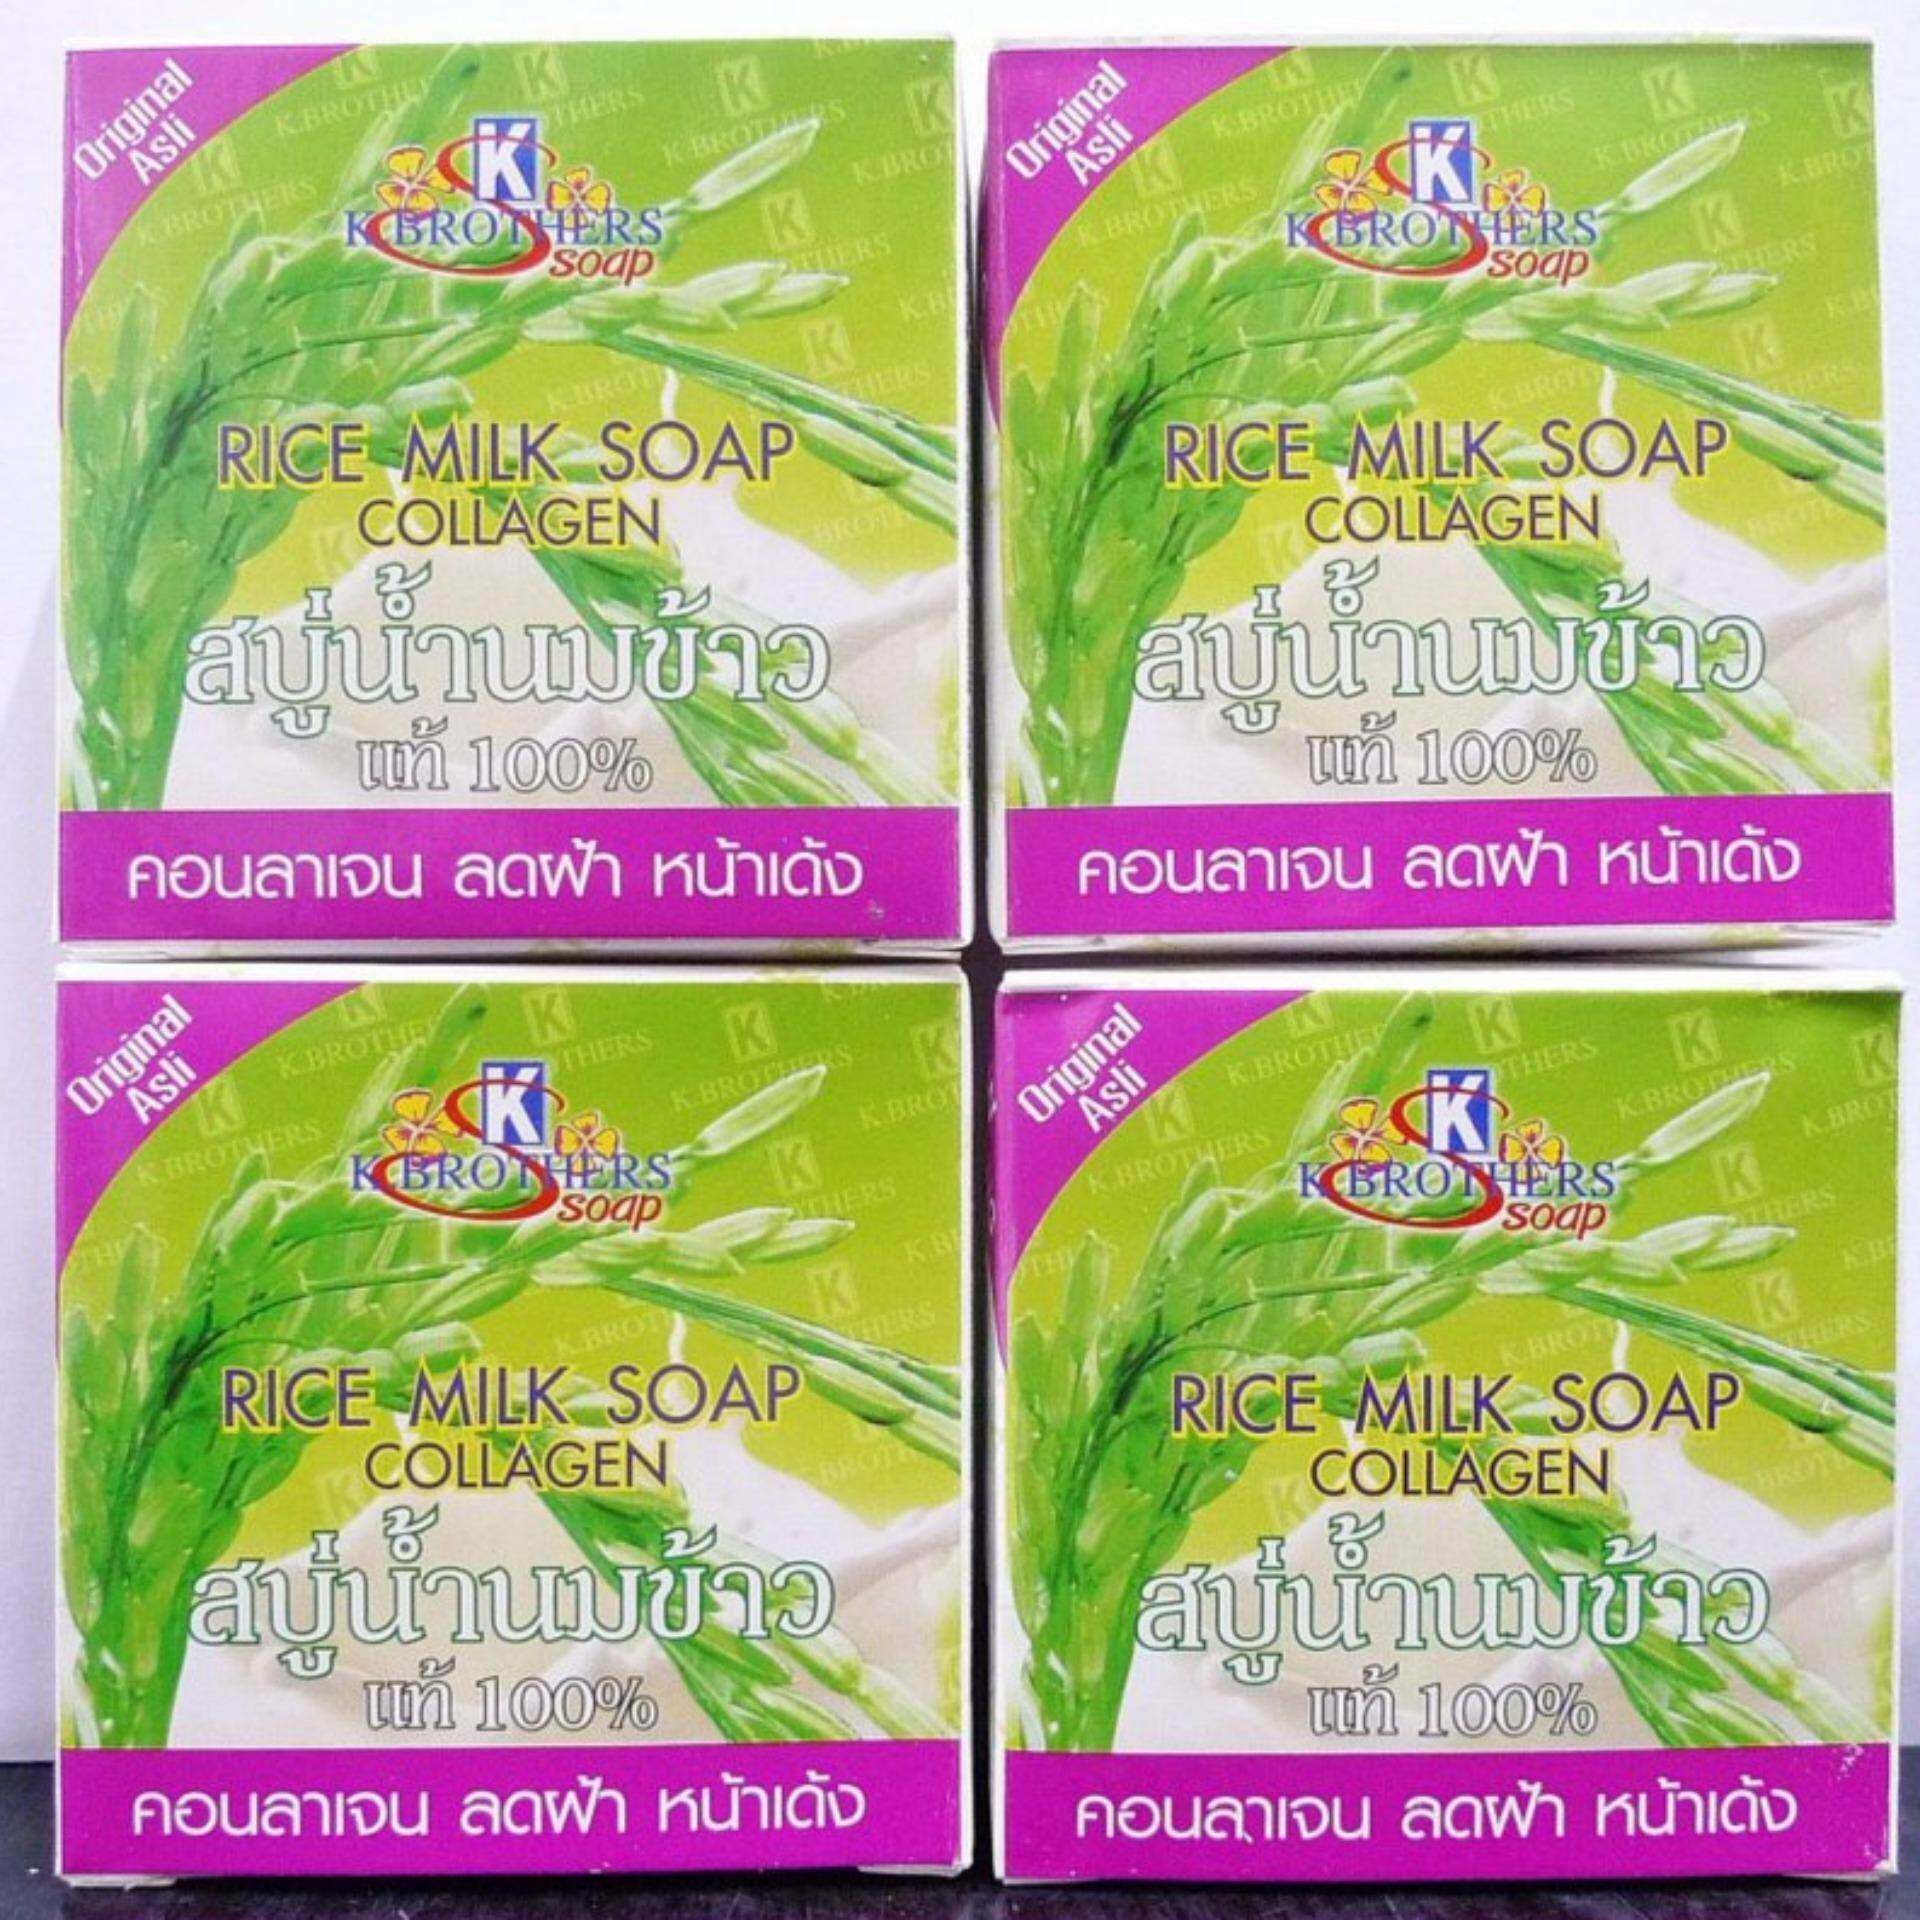 Semakan Semula K Brothers Rice Milk Soap Collagen 1dozen Eshop Checker Hot Deal